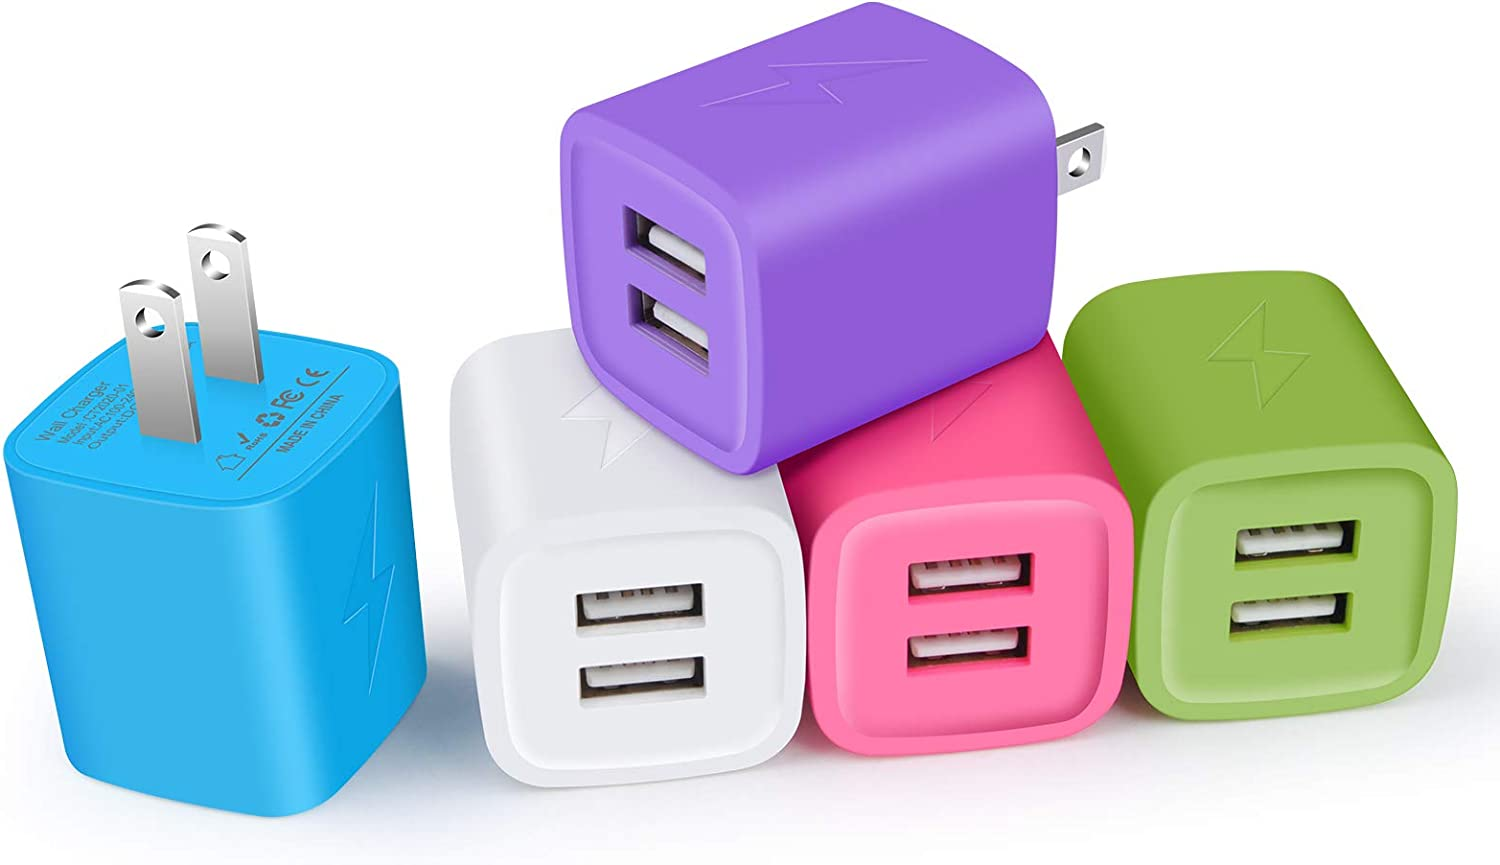 Fast Charging Block, Charger Plug for iPhone, Cube Charger, NonoUV 5Pack 2.1A Dual Port USB Wall Adapter Power Bricks Box for for iPhone SE 11 Pro XR XS X 8 7 6 6s Plus, iPad, Samsung Galaxy S20 S10